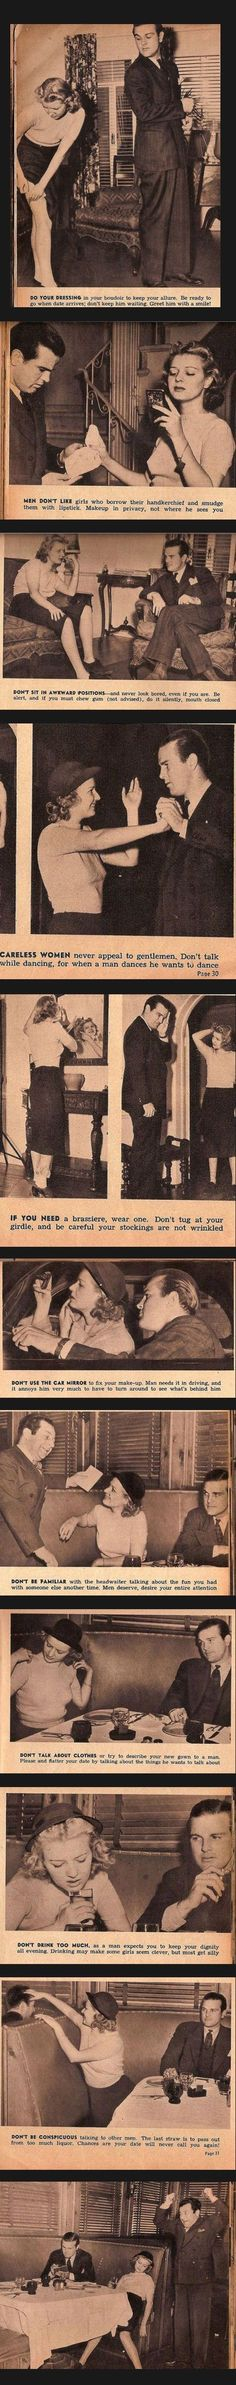 Live by these!! Dating Tips for Women in the 30's